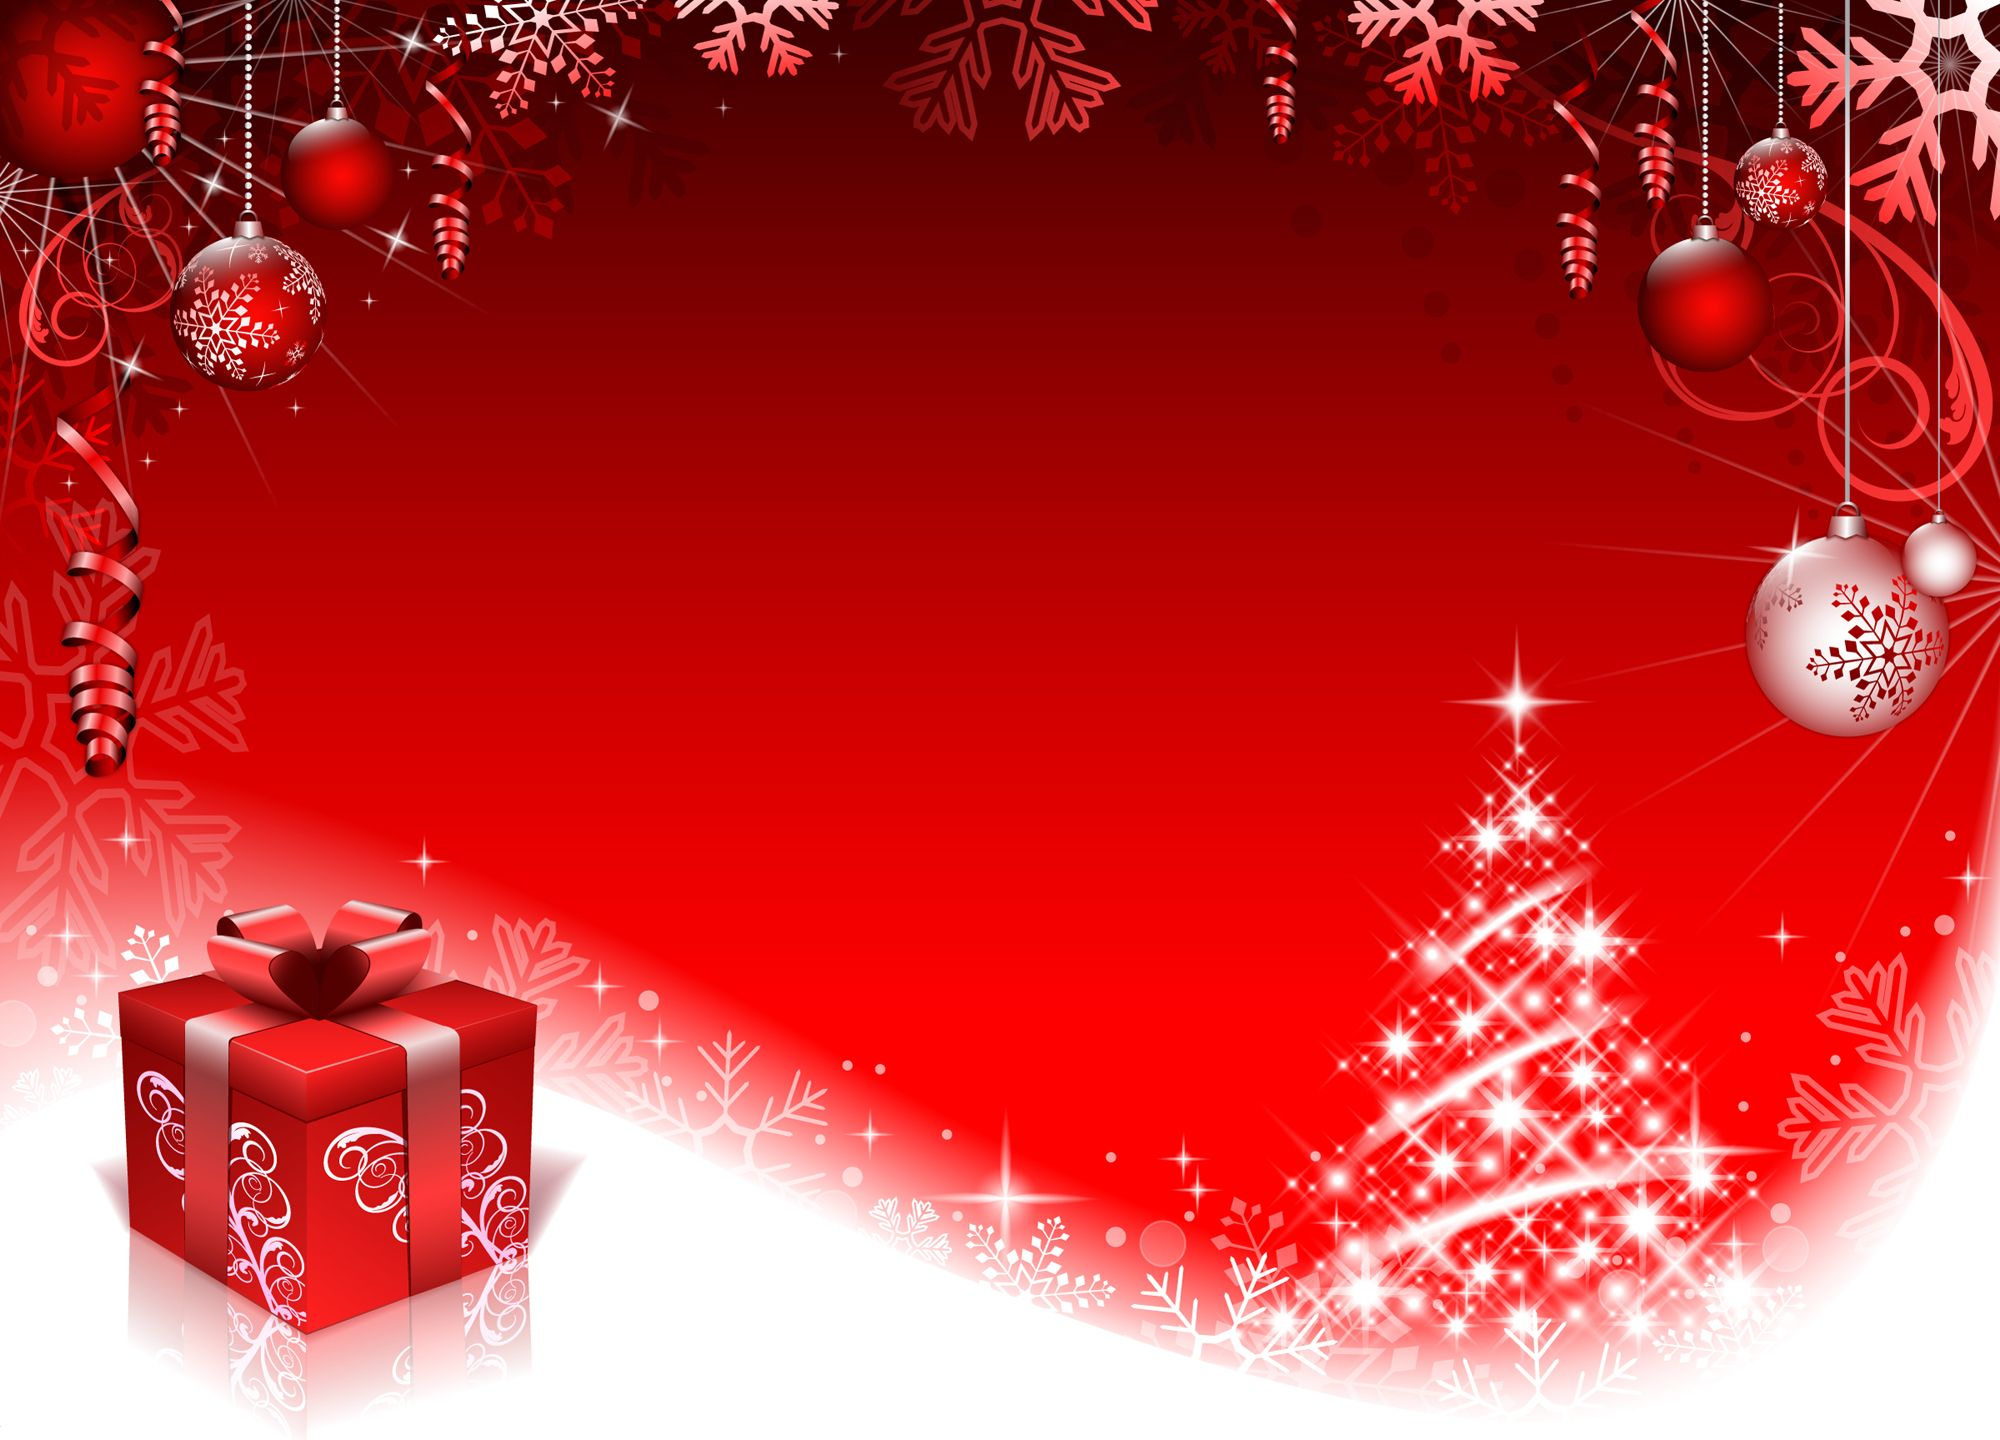 Christmas Backgrounds For Photoshop Christmas Card Templates Free Free Christmas Backgrounds Christmas Cards Free